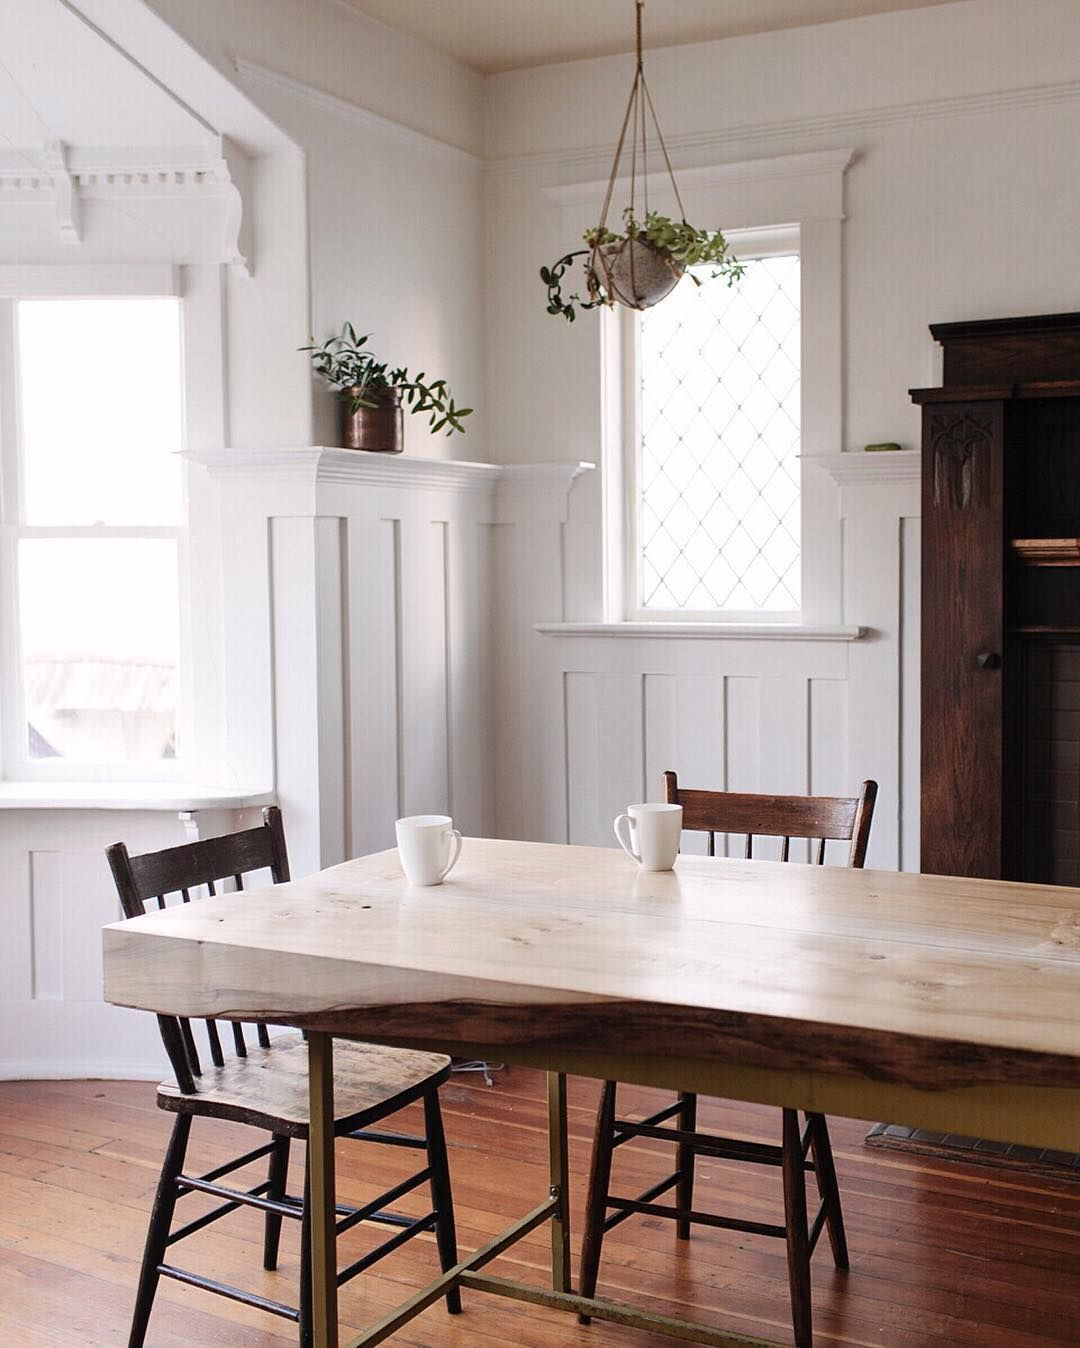 Pictures Of Wainscoting In Dining Rooms: Kellybrownphoto: Happy For A Sunny Day At Home